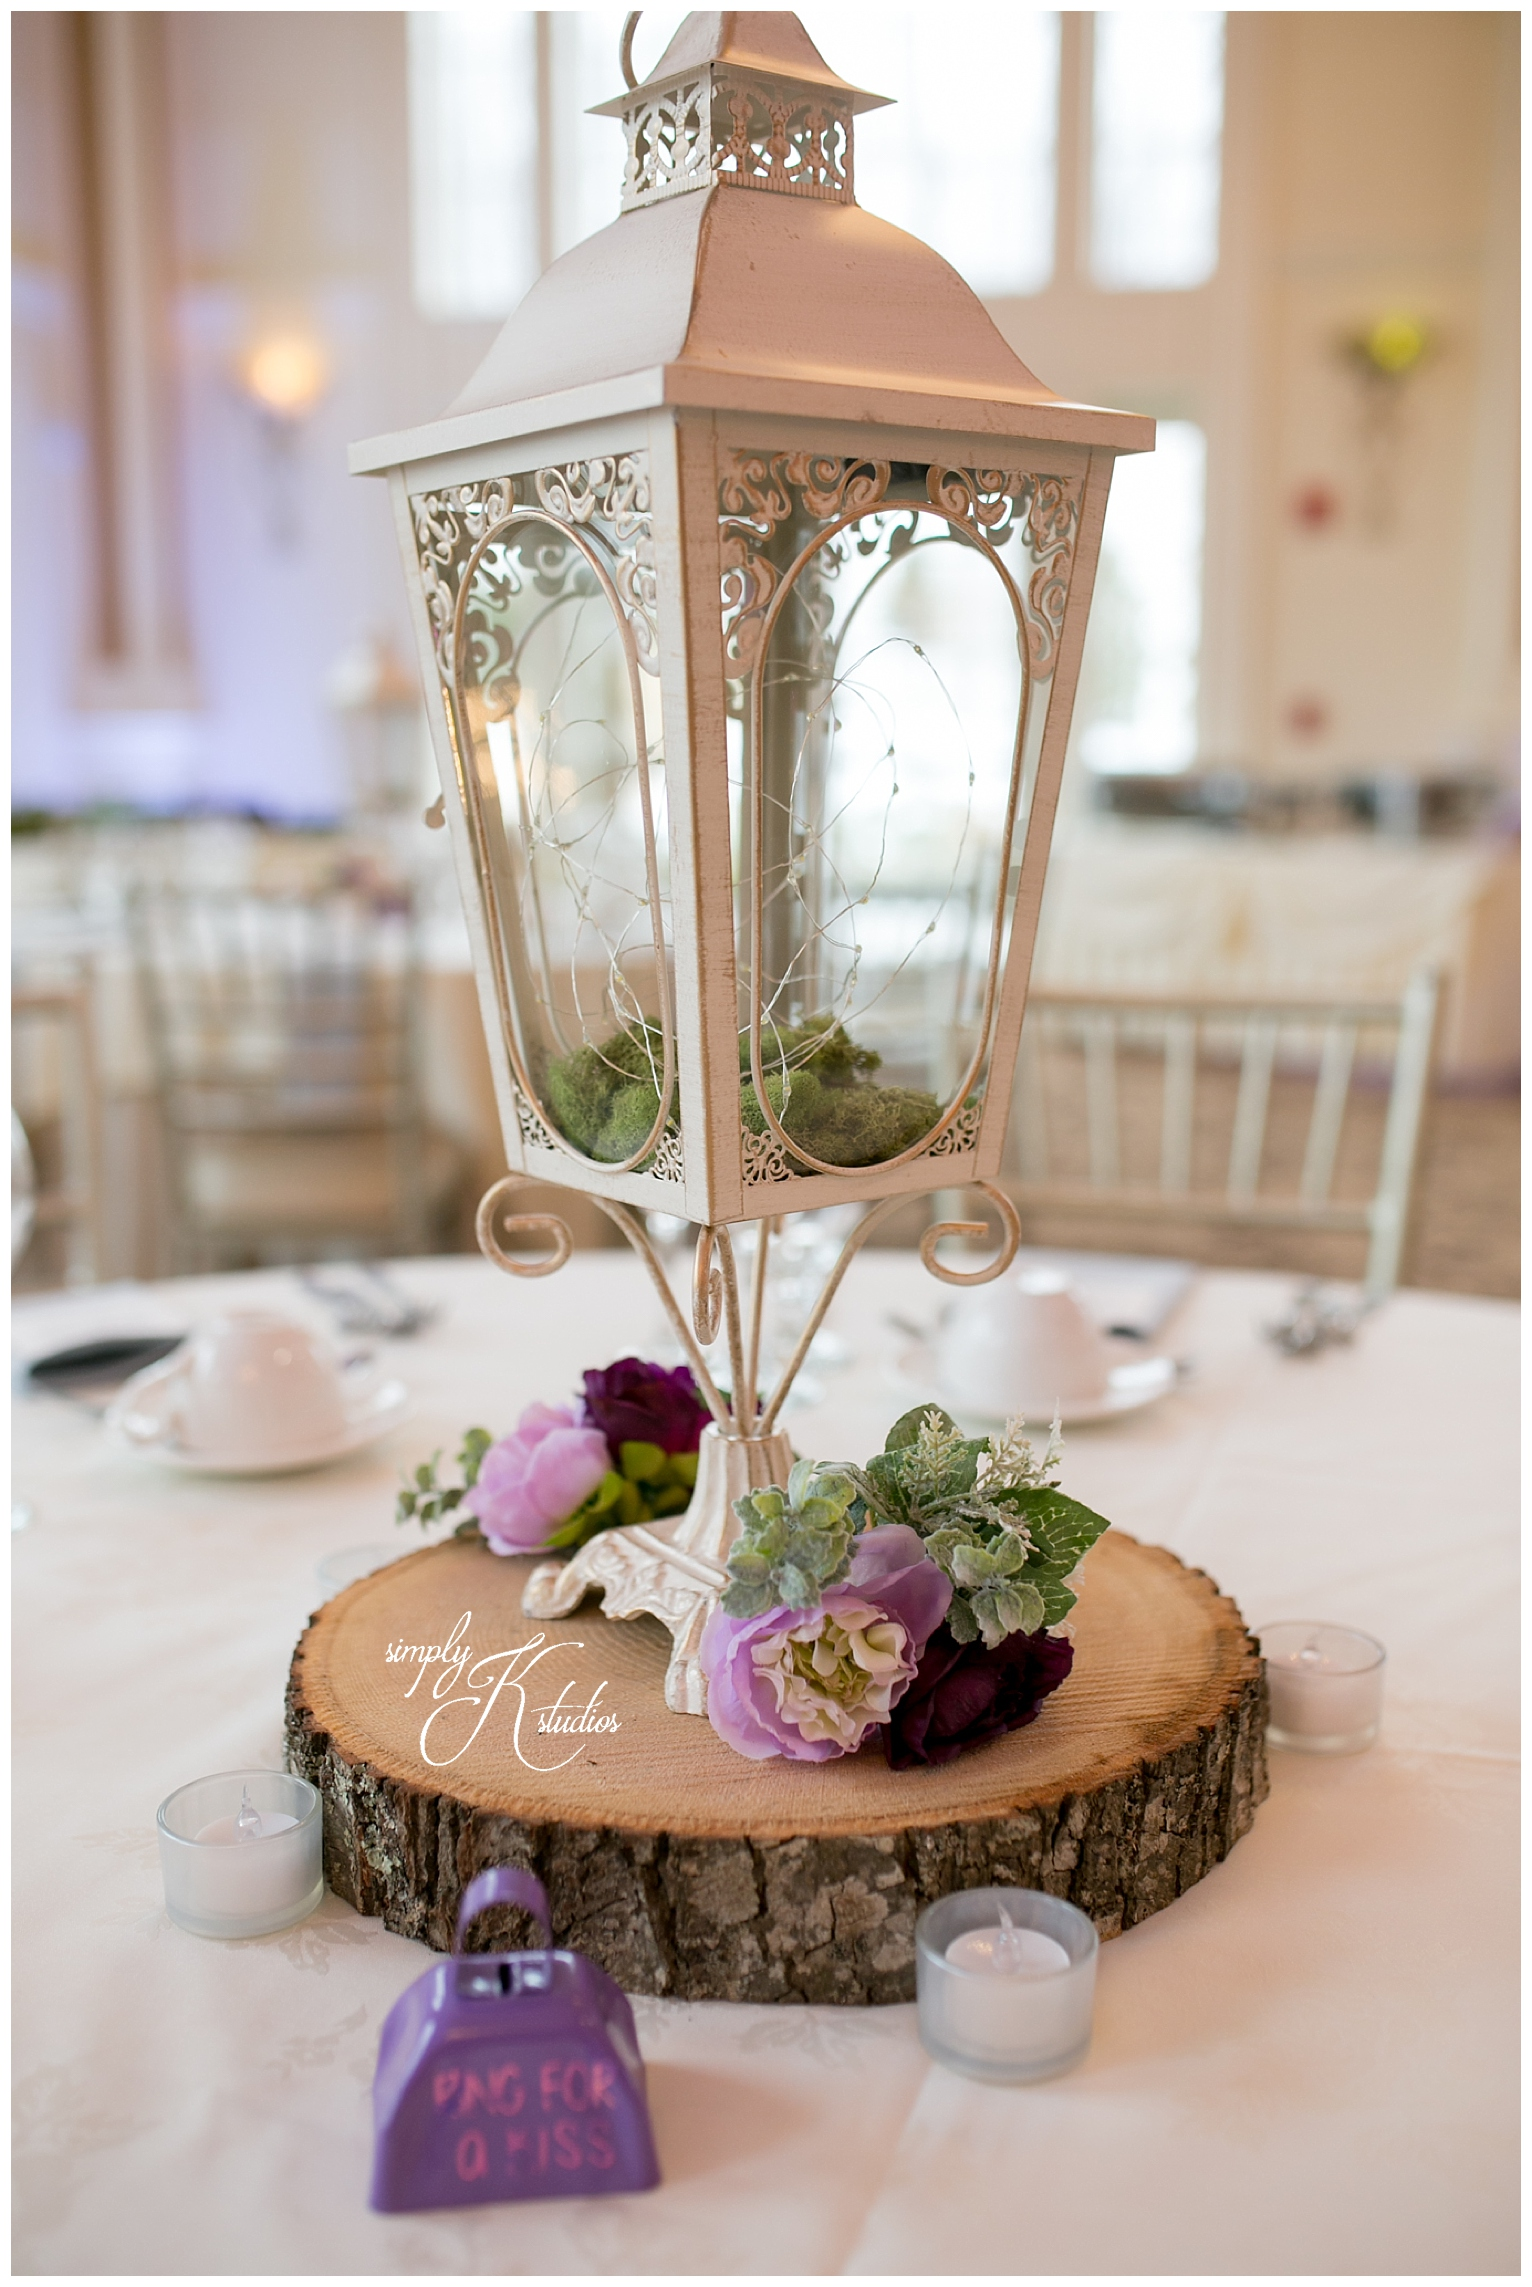 Wedding Centerpiece Ideas.jpg